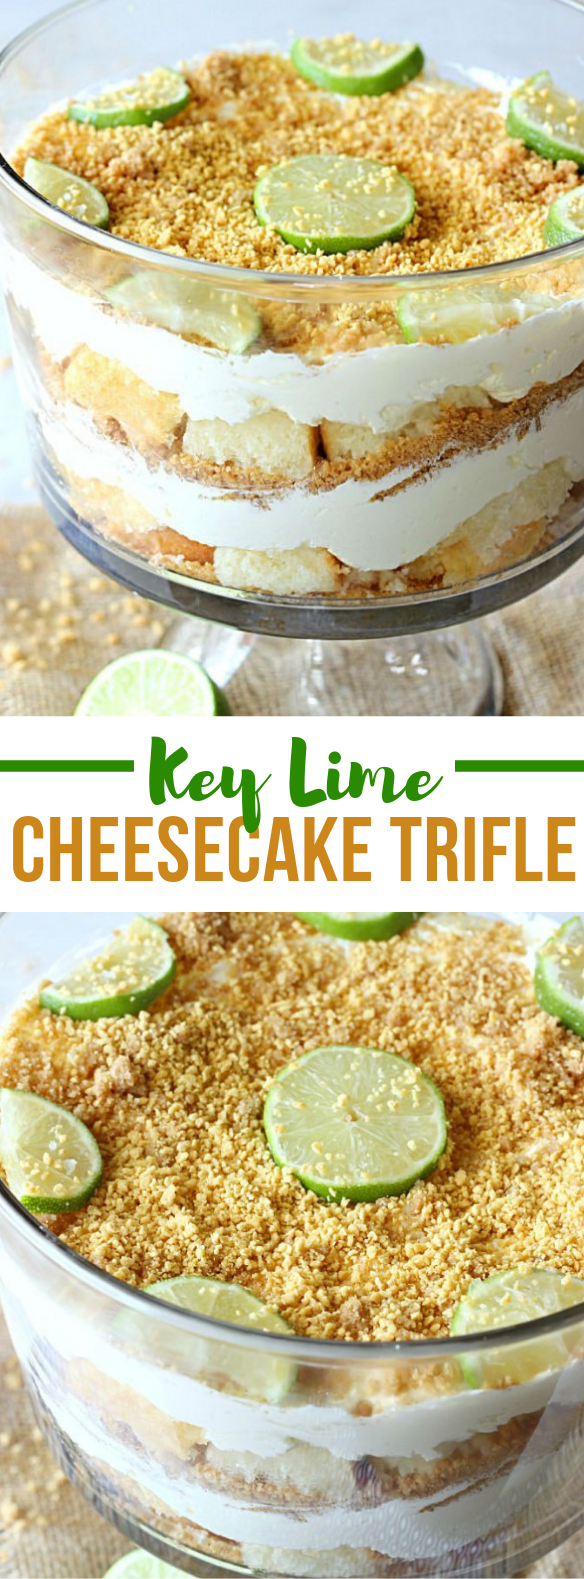 KEY LIME CHEESECAKE TRIFLE #dessert #sweets